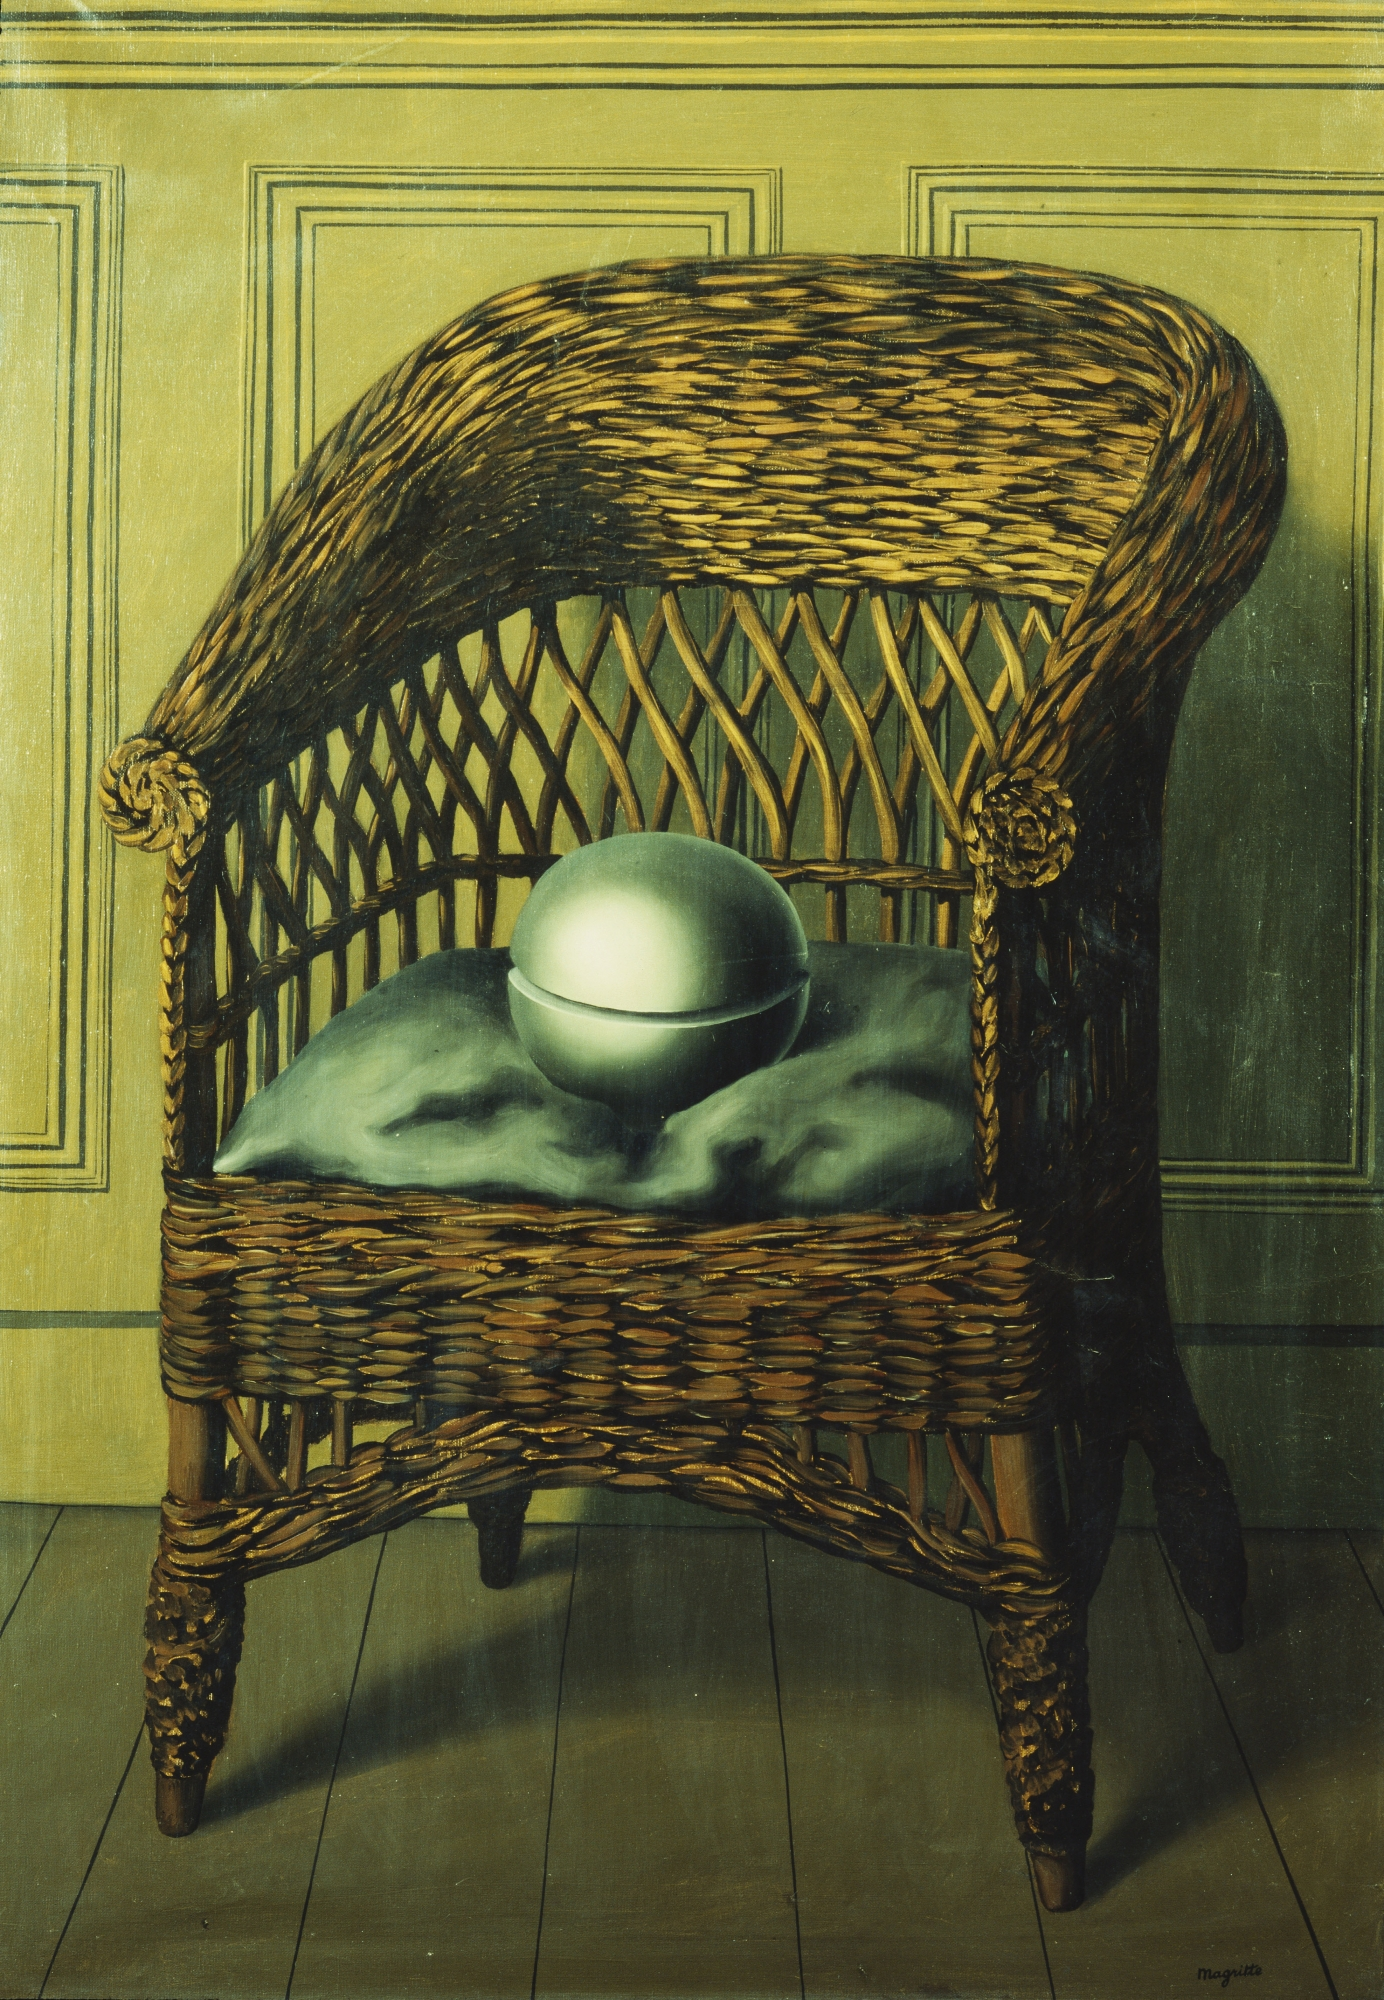 a biography of rene magritte the surrealist painter